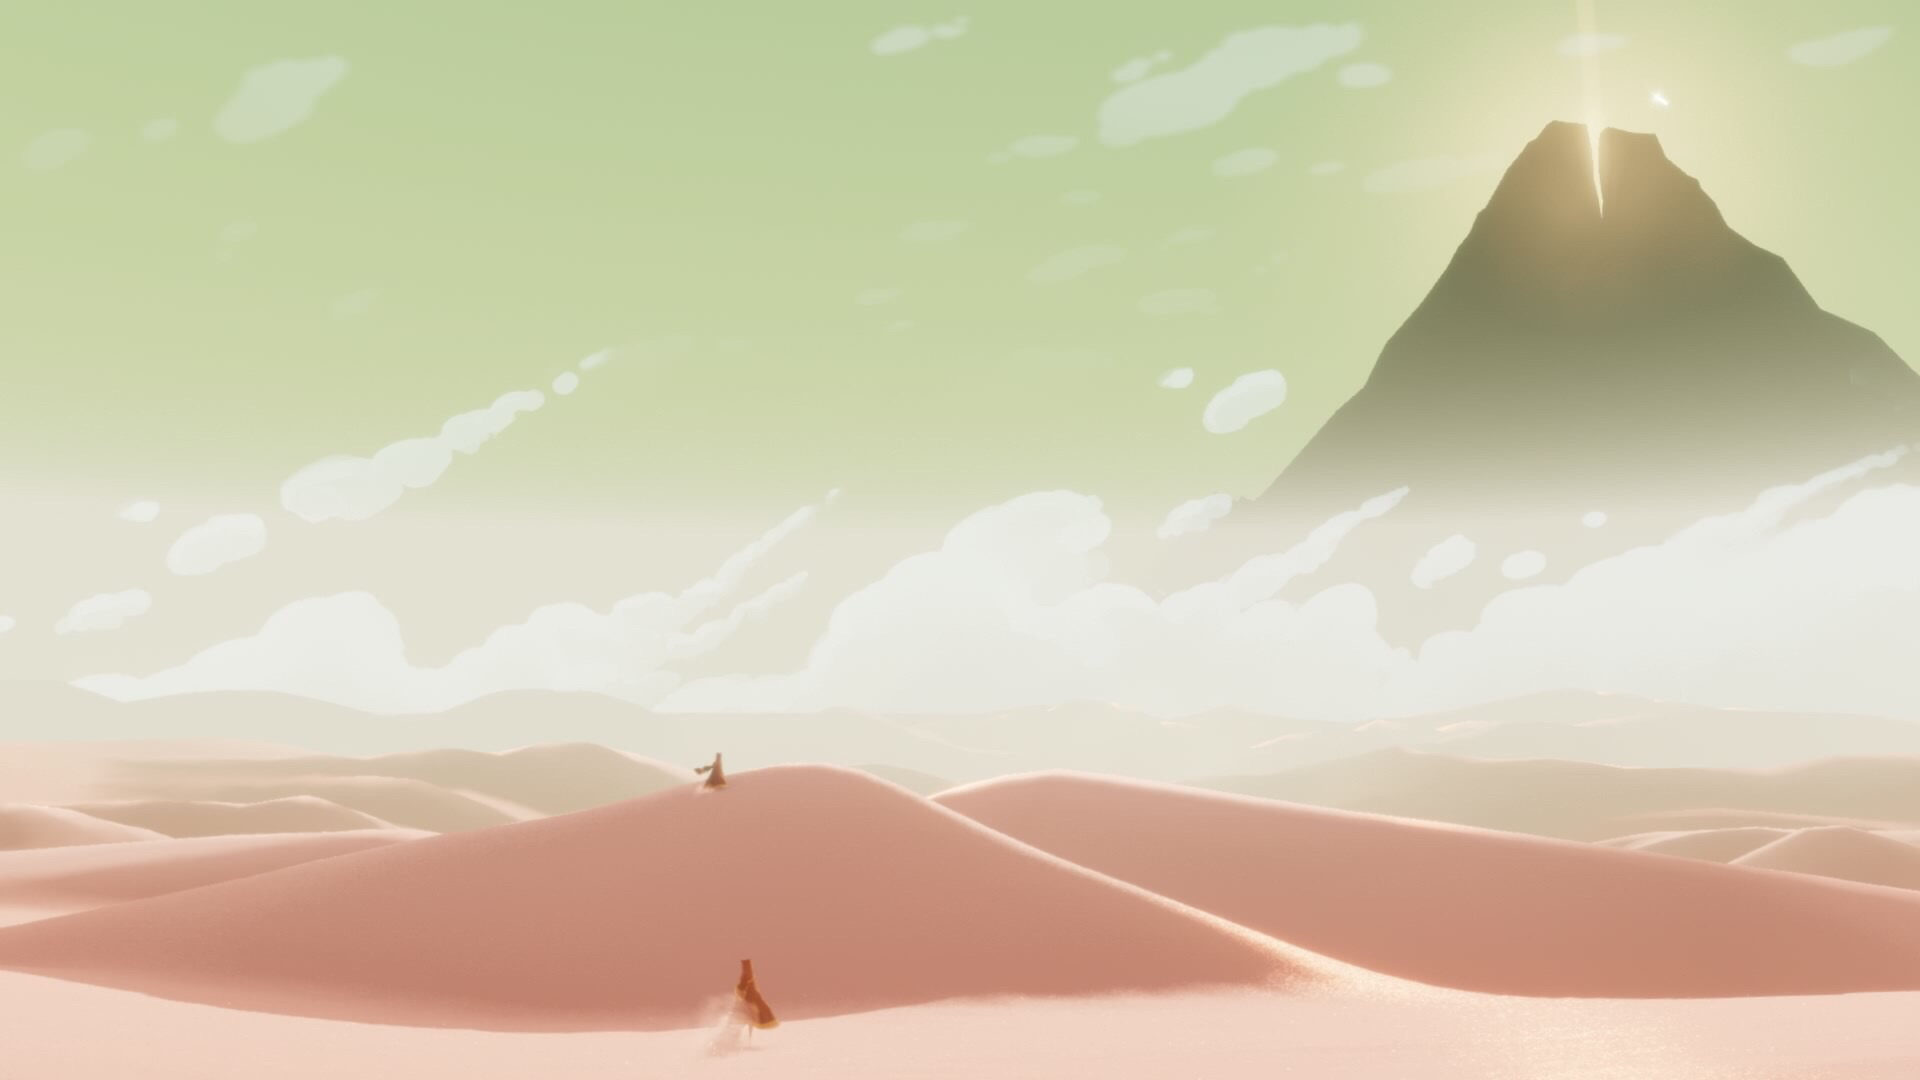 The landscapes of Journey are simply breathtaking at times.